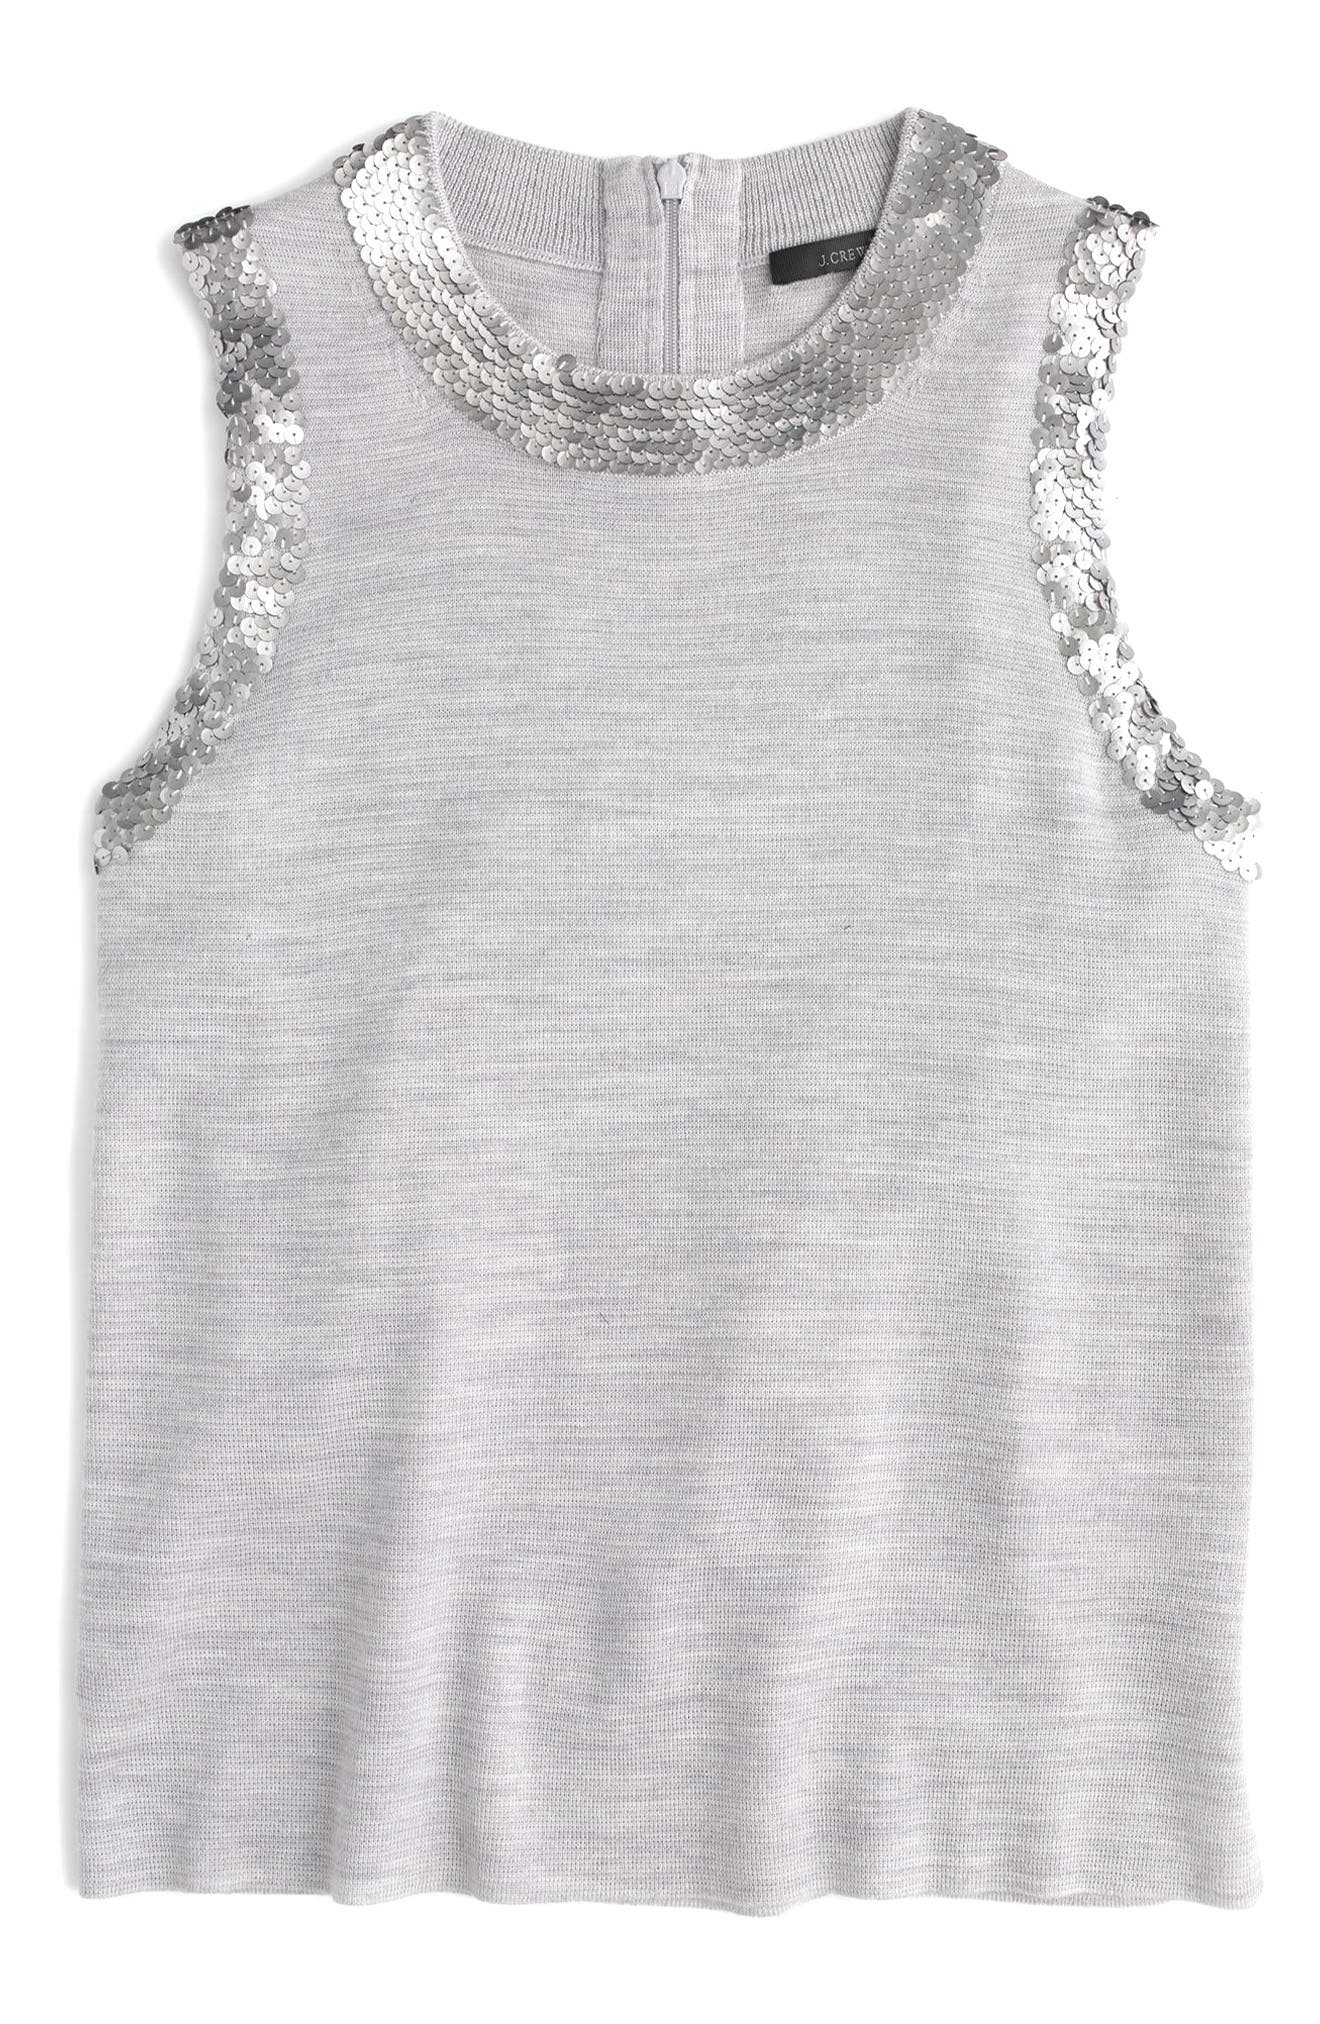 Main Image - J.Crew Sequin Crewneck Shell